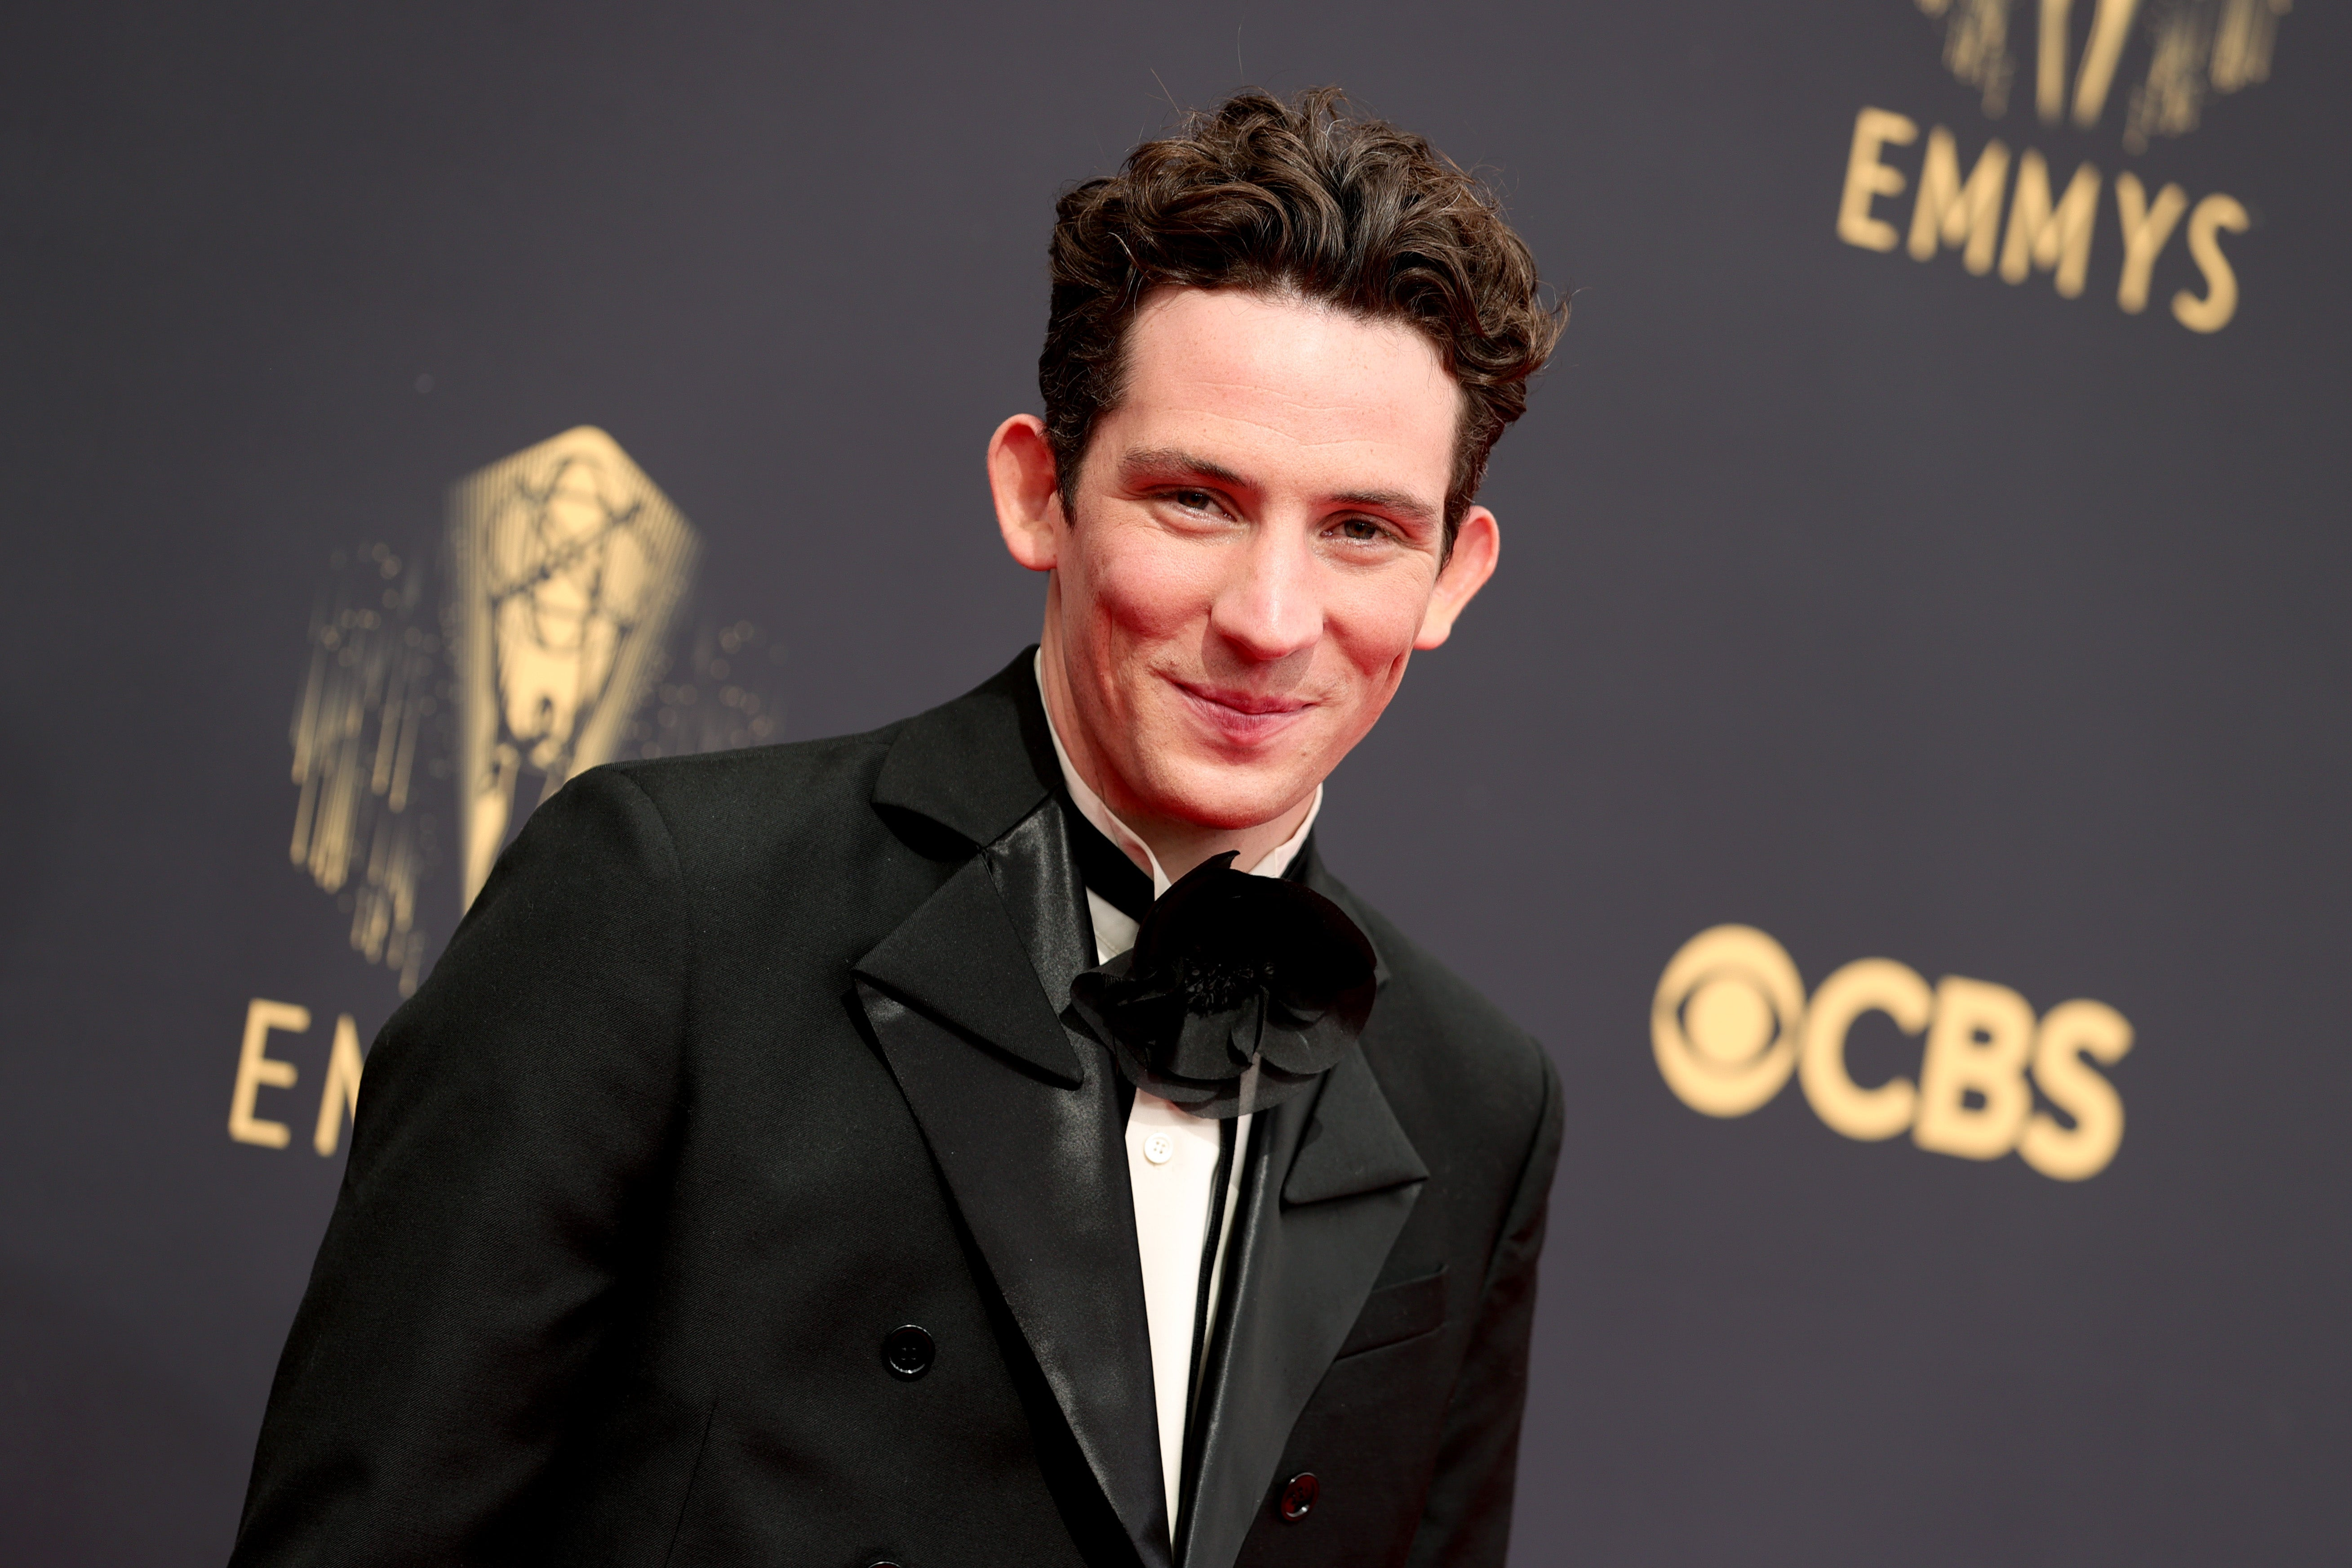 Josh O'Connor attends the 73rd Primetime Emmy Awards at L.A. LIVE on September 19, 2021 in Los Angeles, California.